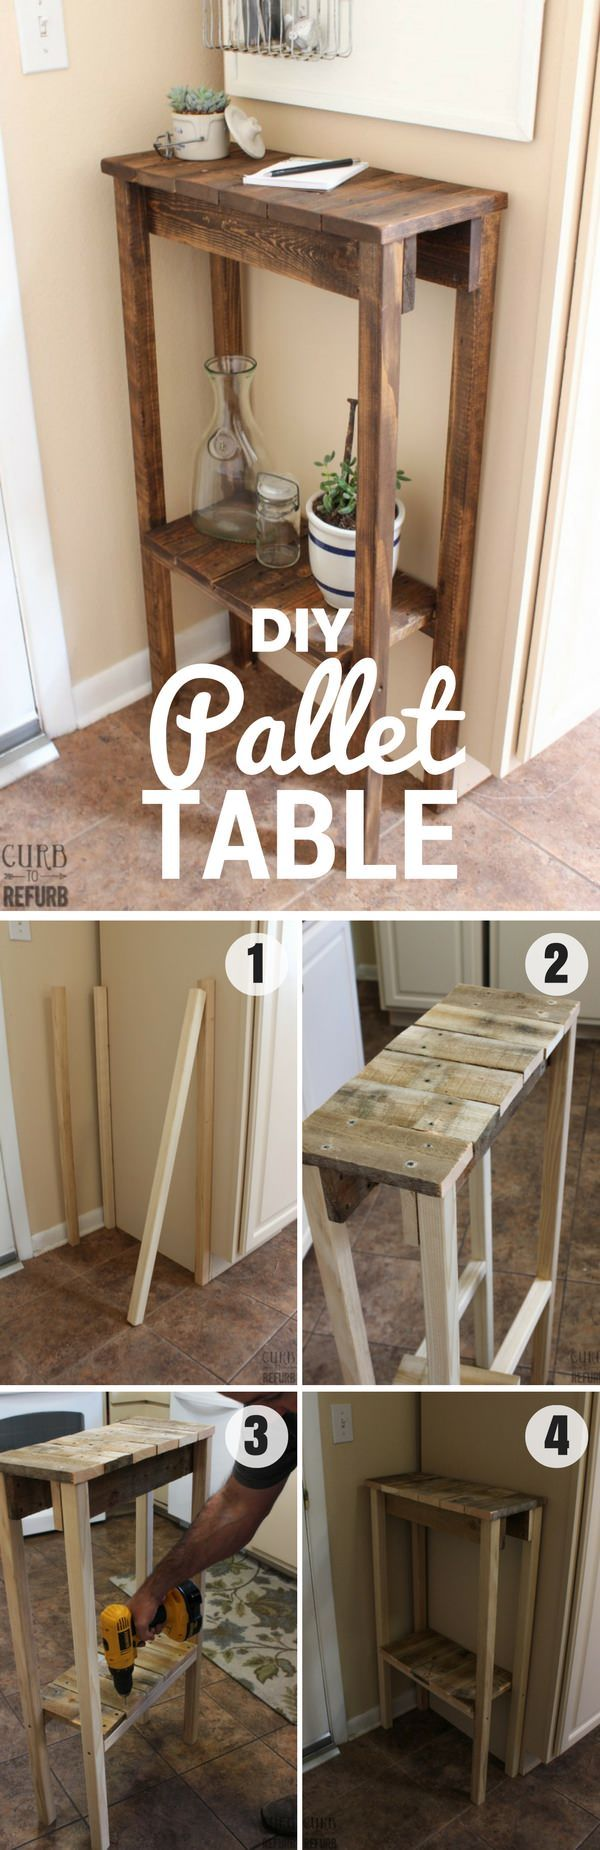 Weve picked 15 amazing but still easy diy wood craft projects for weve picked 15 amazing but still easy diy wood craft projects for home decor so that you can build something unique yourself solutioingenieria Gallery